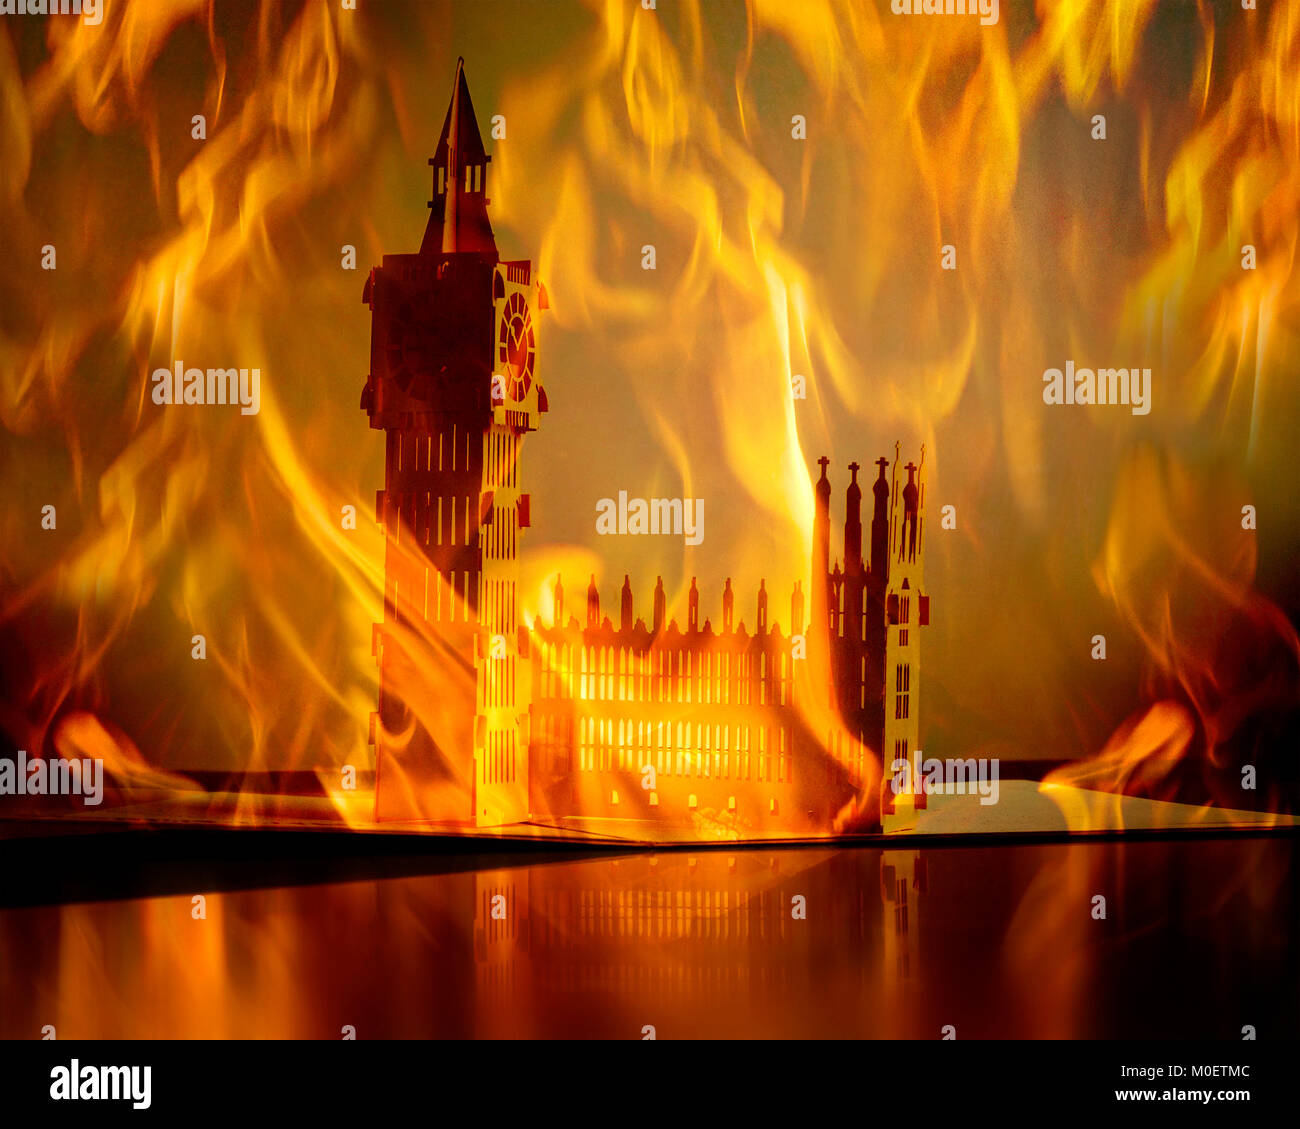 CONCEPT PHOTGRAPHY : London's Burning Photo Stock